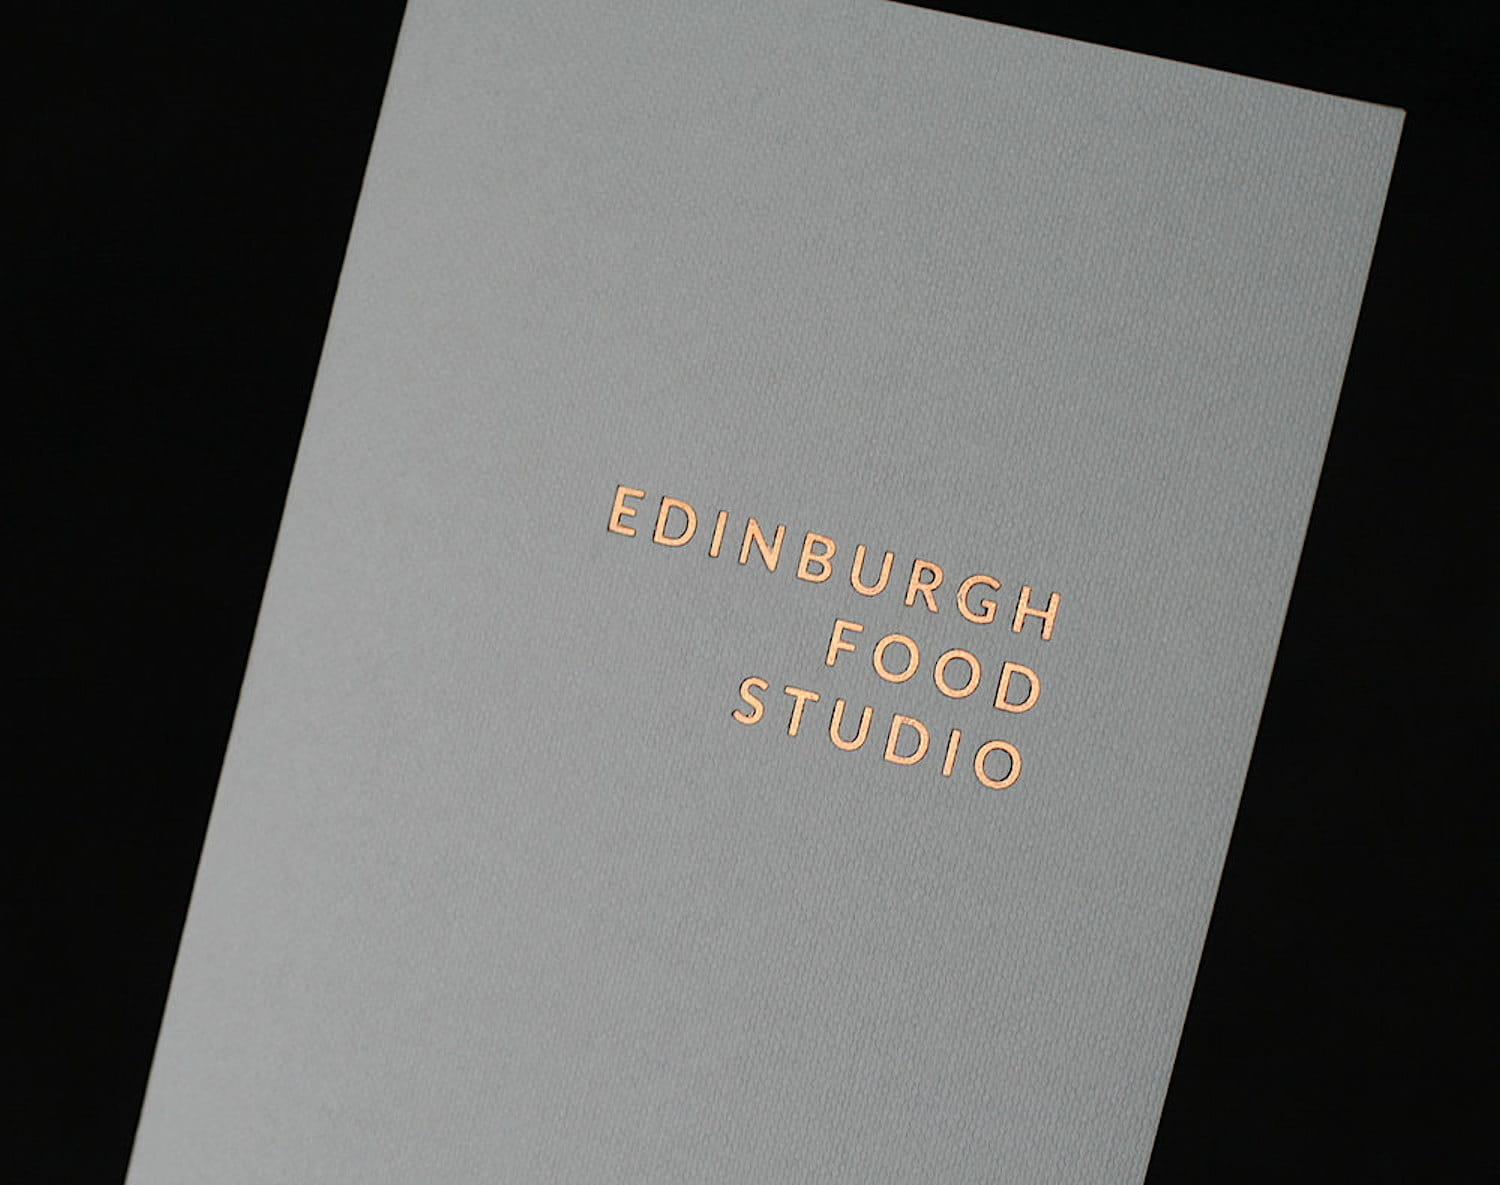 Edinburgh Food Studio menu cover